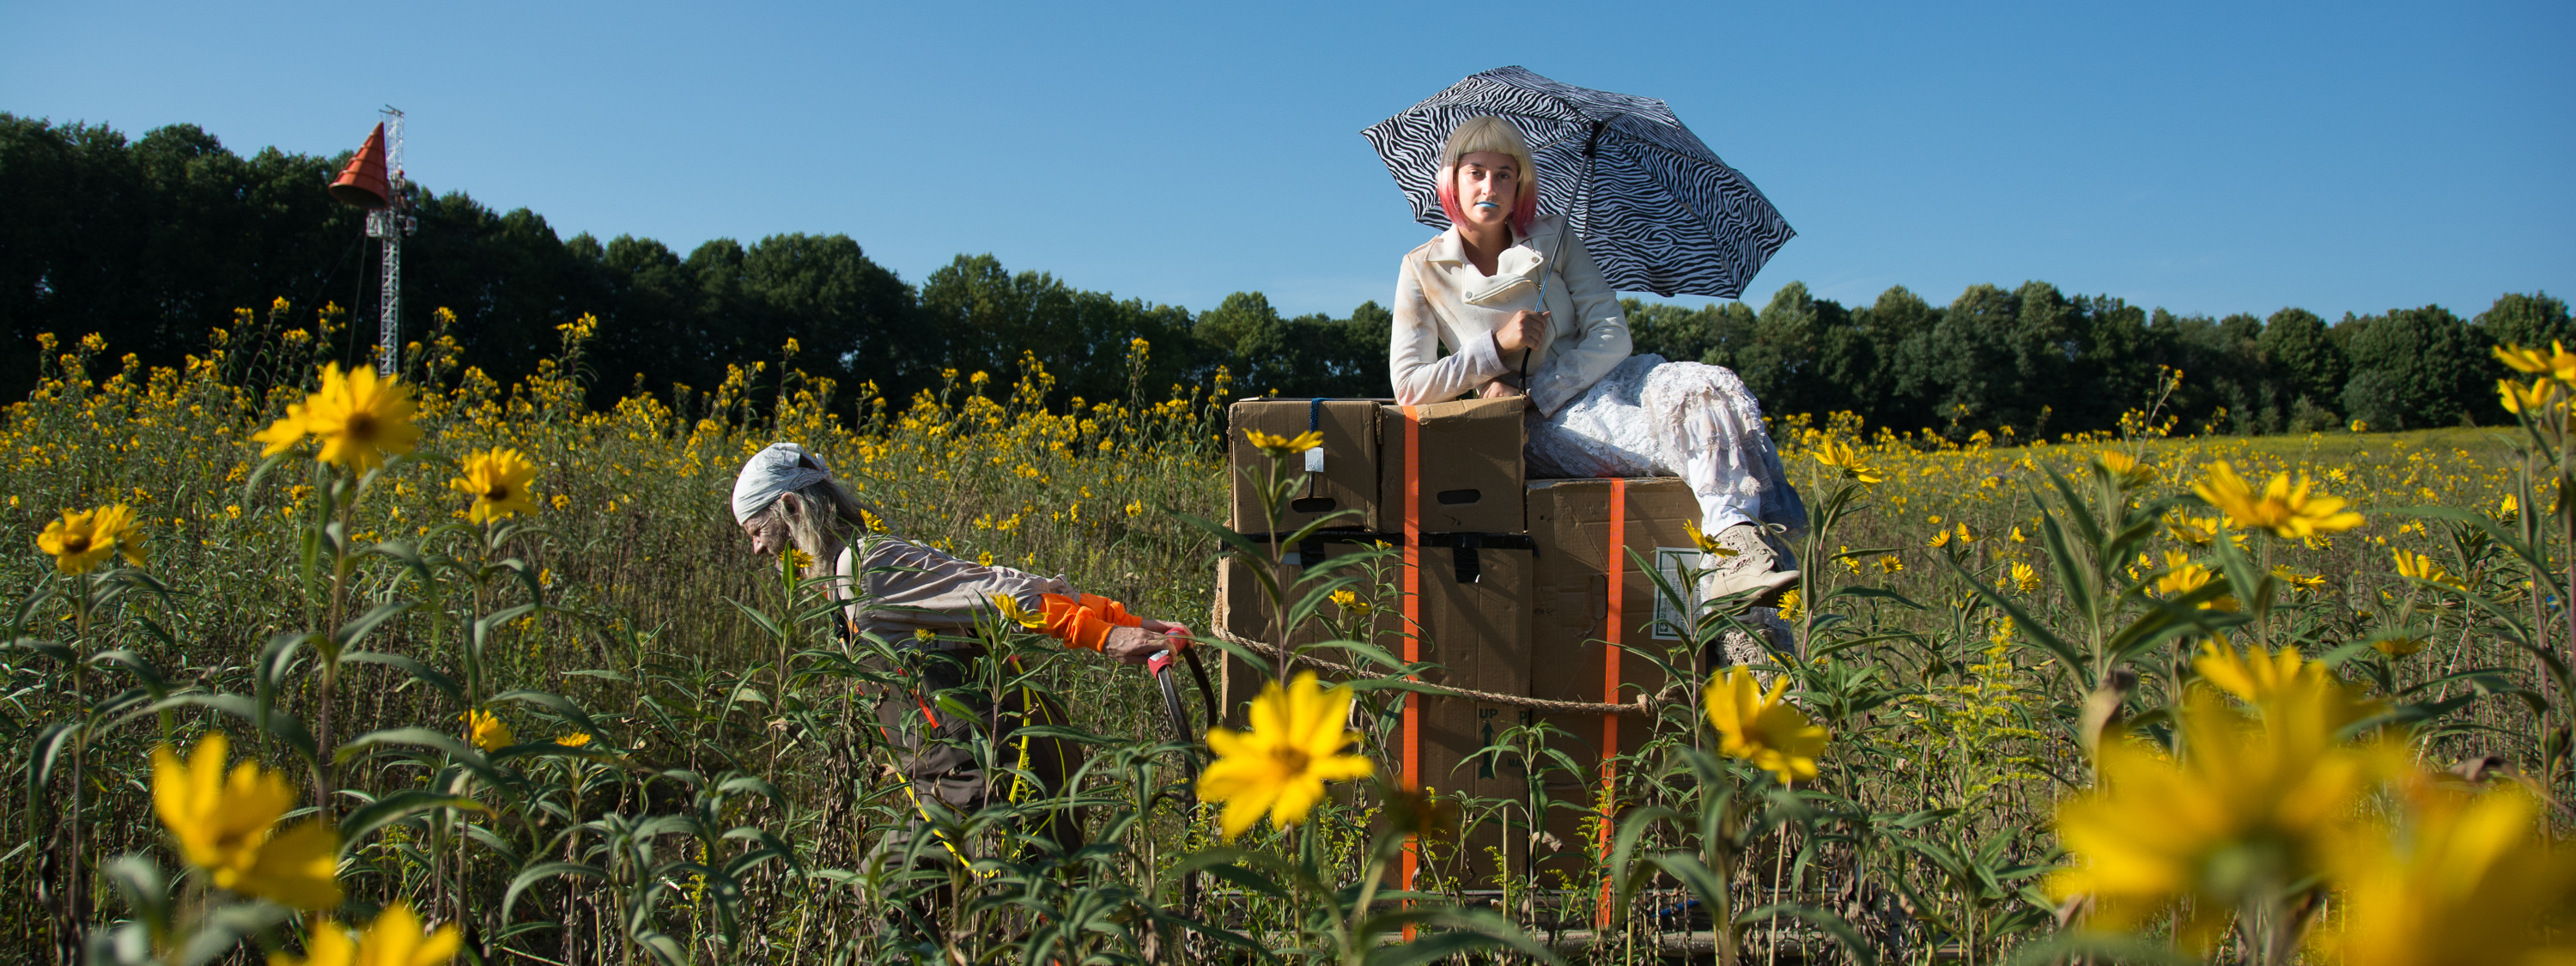 188522_lost-in-the-meadow_coletti_-heather-_longwood-volunteer-photographer_